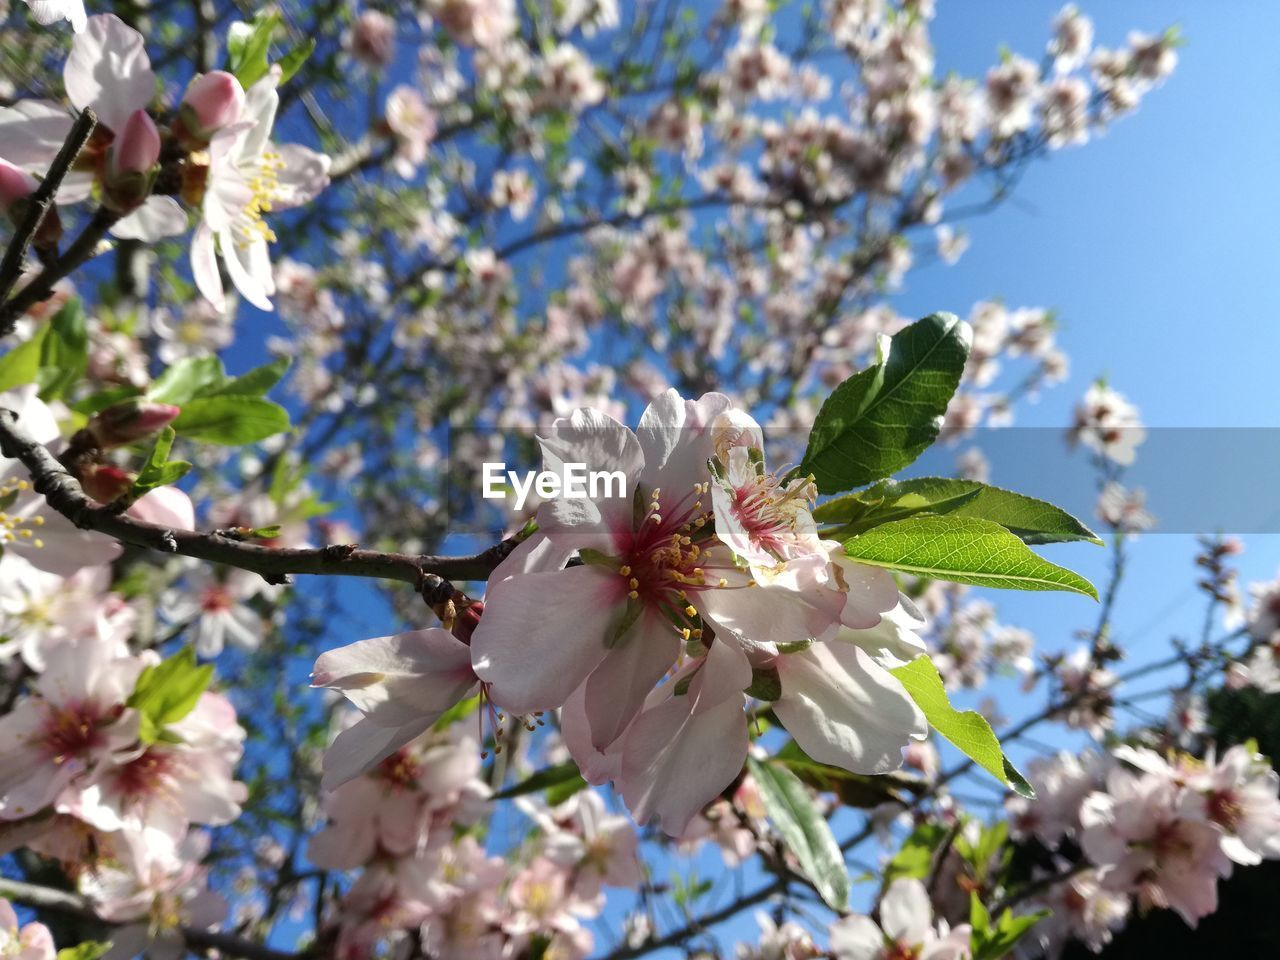 flowering plant, plant, fragility, flower, vulnerability, freshness, growth, blossom, tree, beauty in nature, petal, springtime, low angle view, nature, branch, close-up, cherry blossom, day, flower head, inflorescence, no people, pollen, cherry tree, outdoors, spring